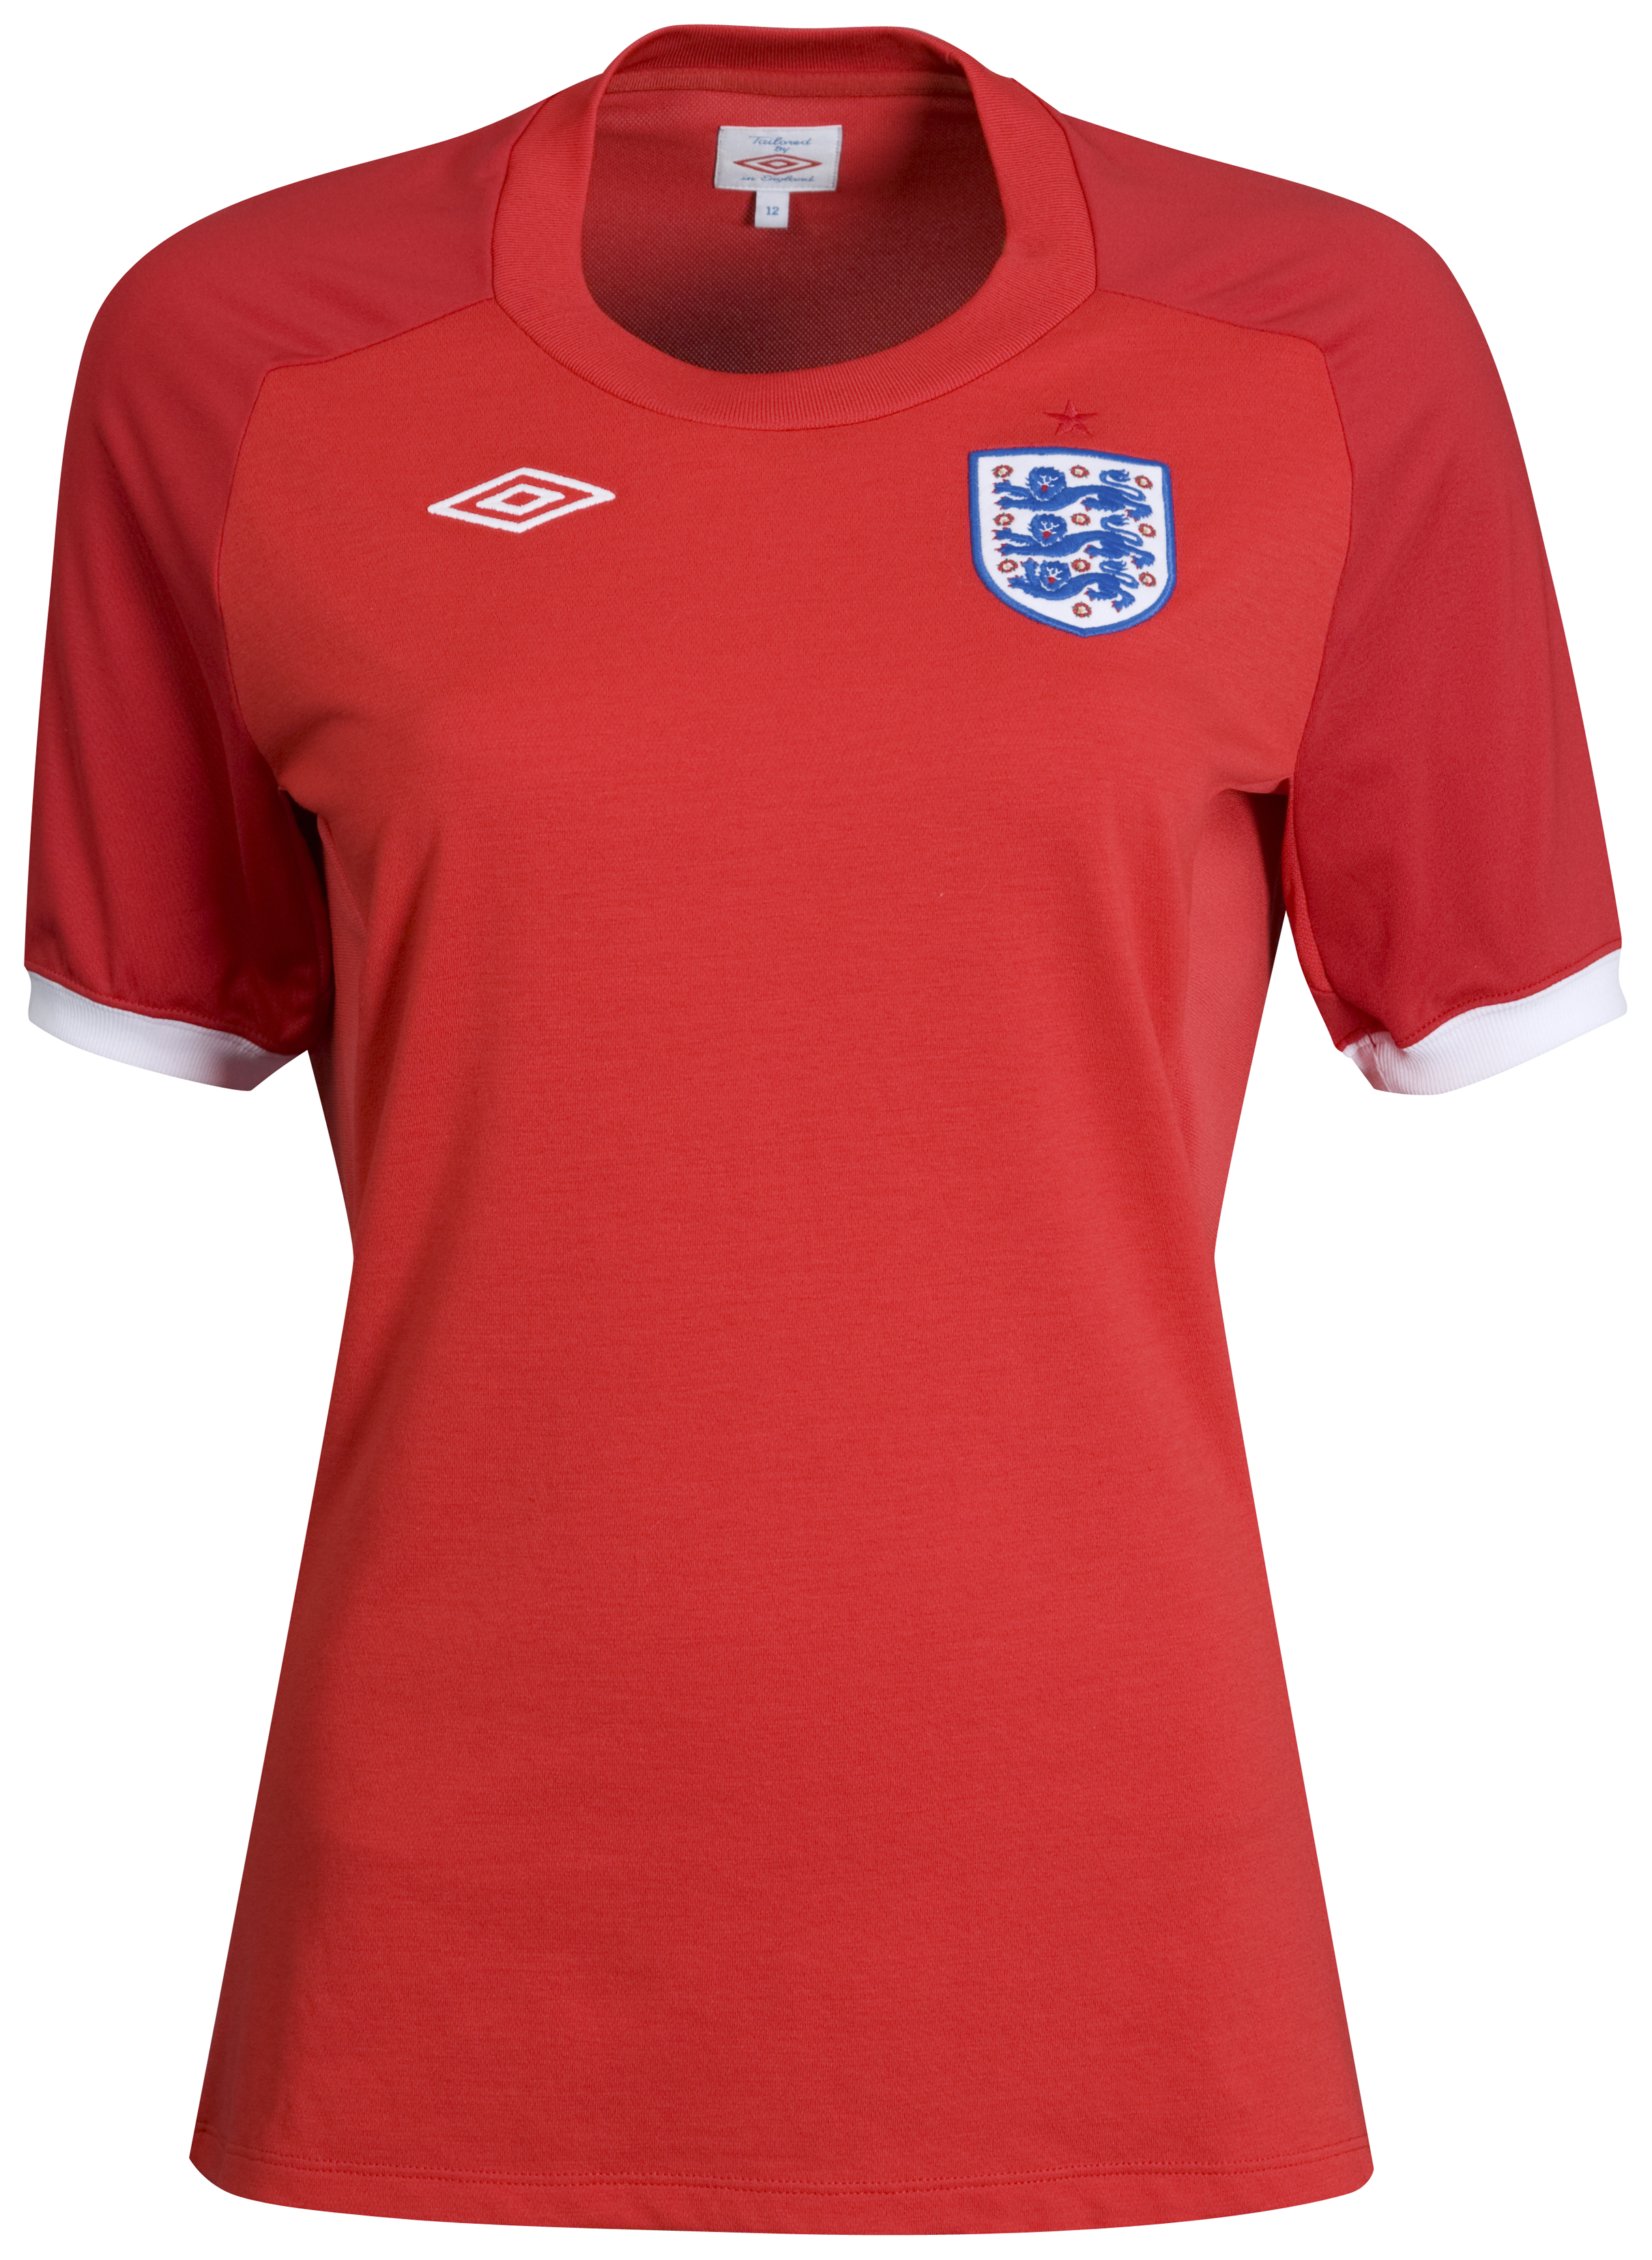 England Away Shirt 2010 - Womens